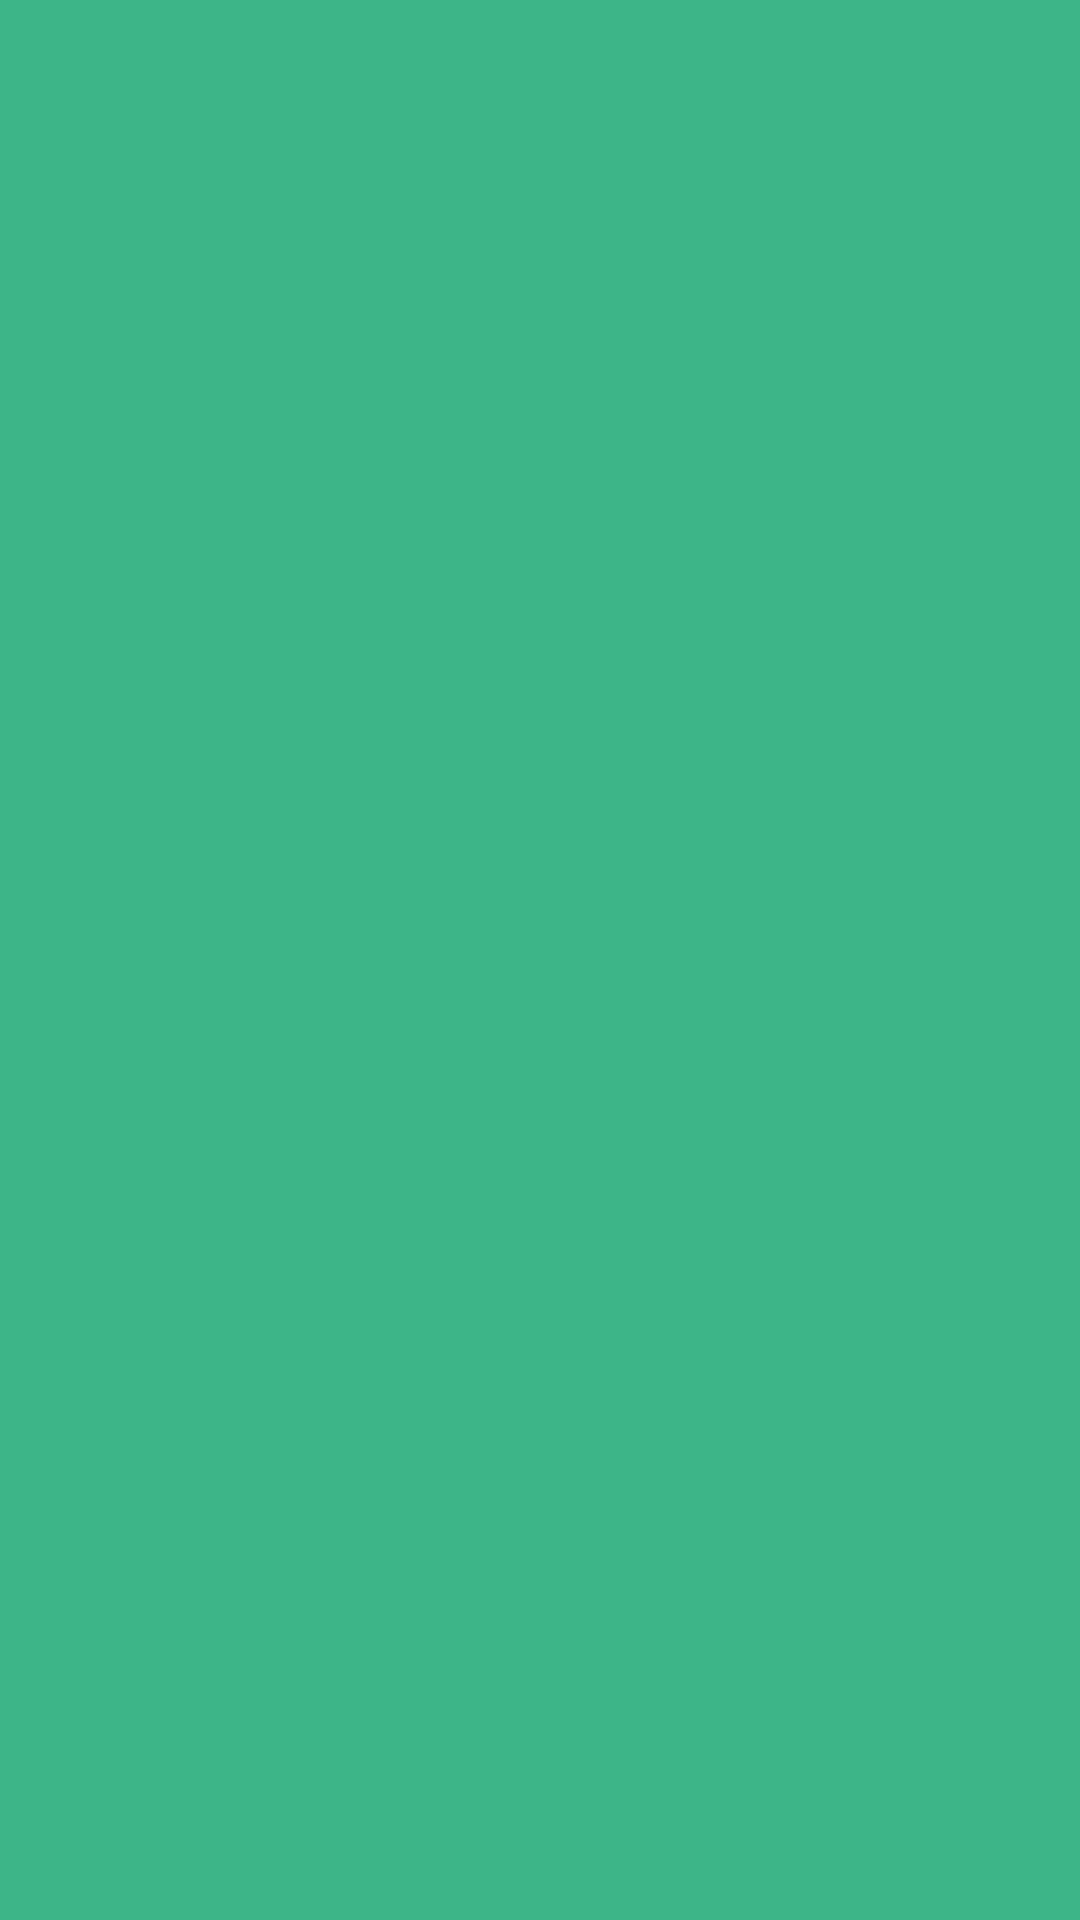 1080x1920 Mint Solid Color Background